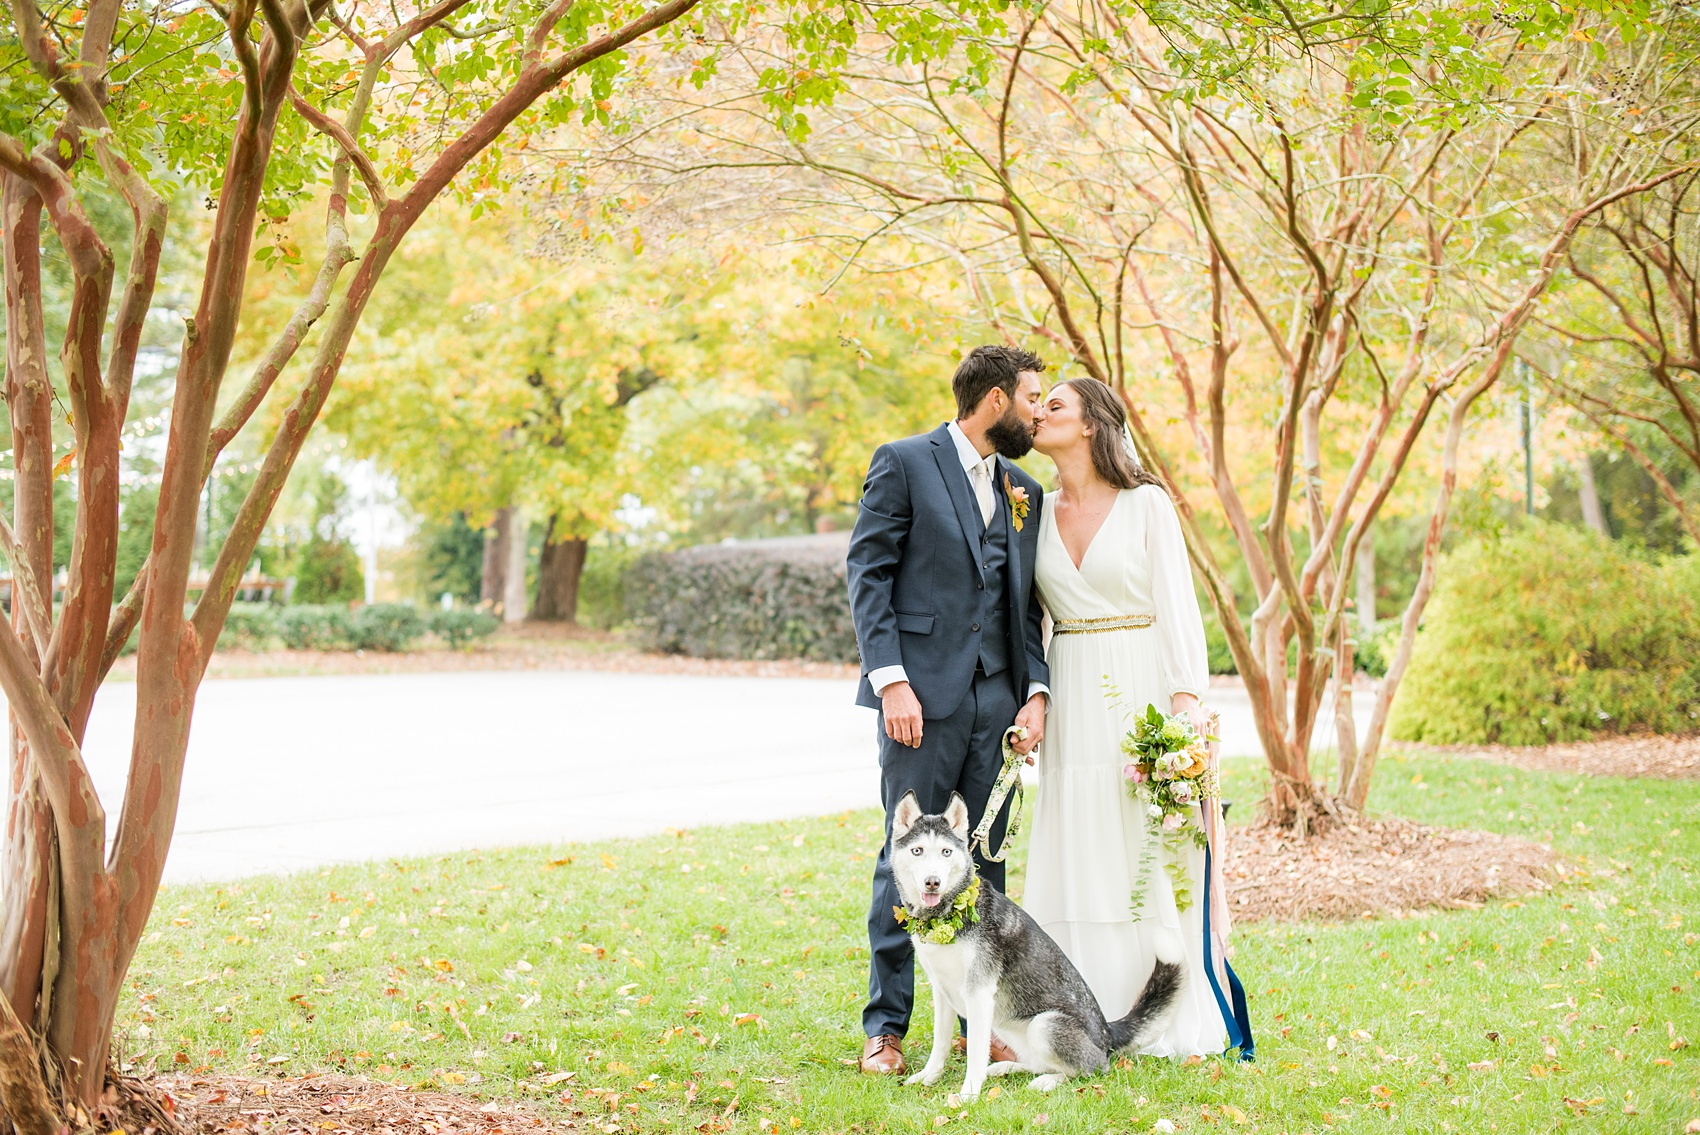 Mikkel Paige Photography photos from a wedding at Leslie-Alford Mims House in North Carolina. Picture of the Boho bride and groom with their Husky dog in a floral collar on their fall Mad Dash Weddings event day.